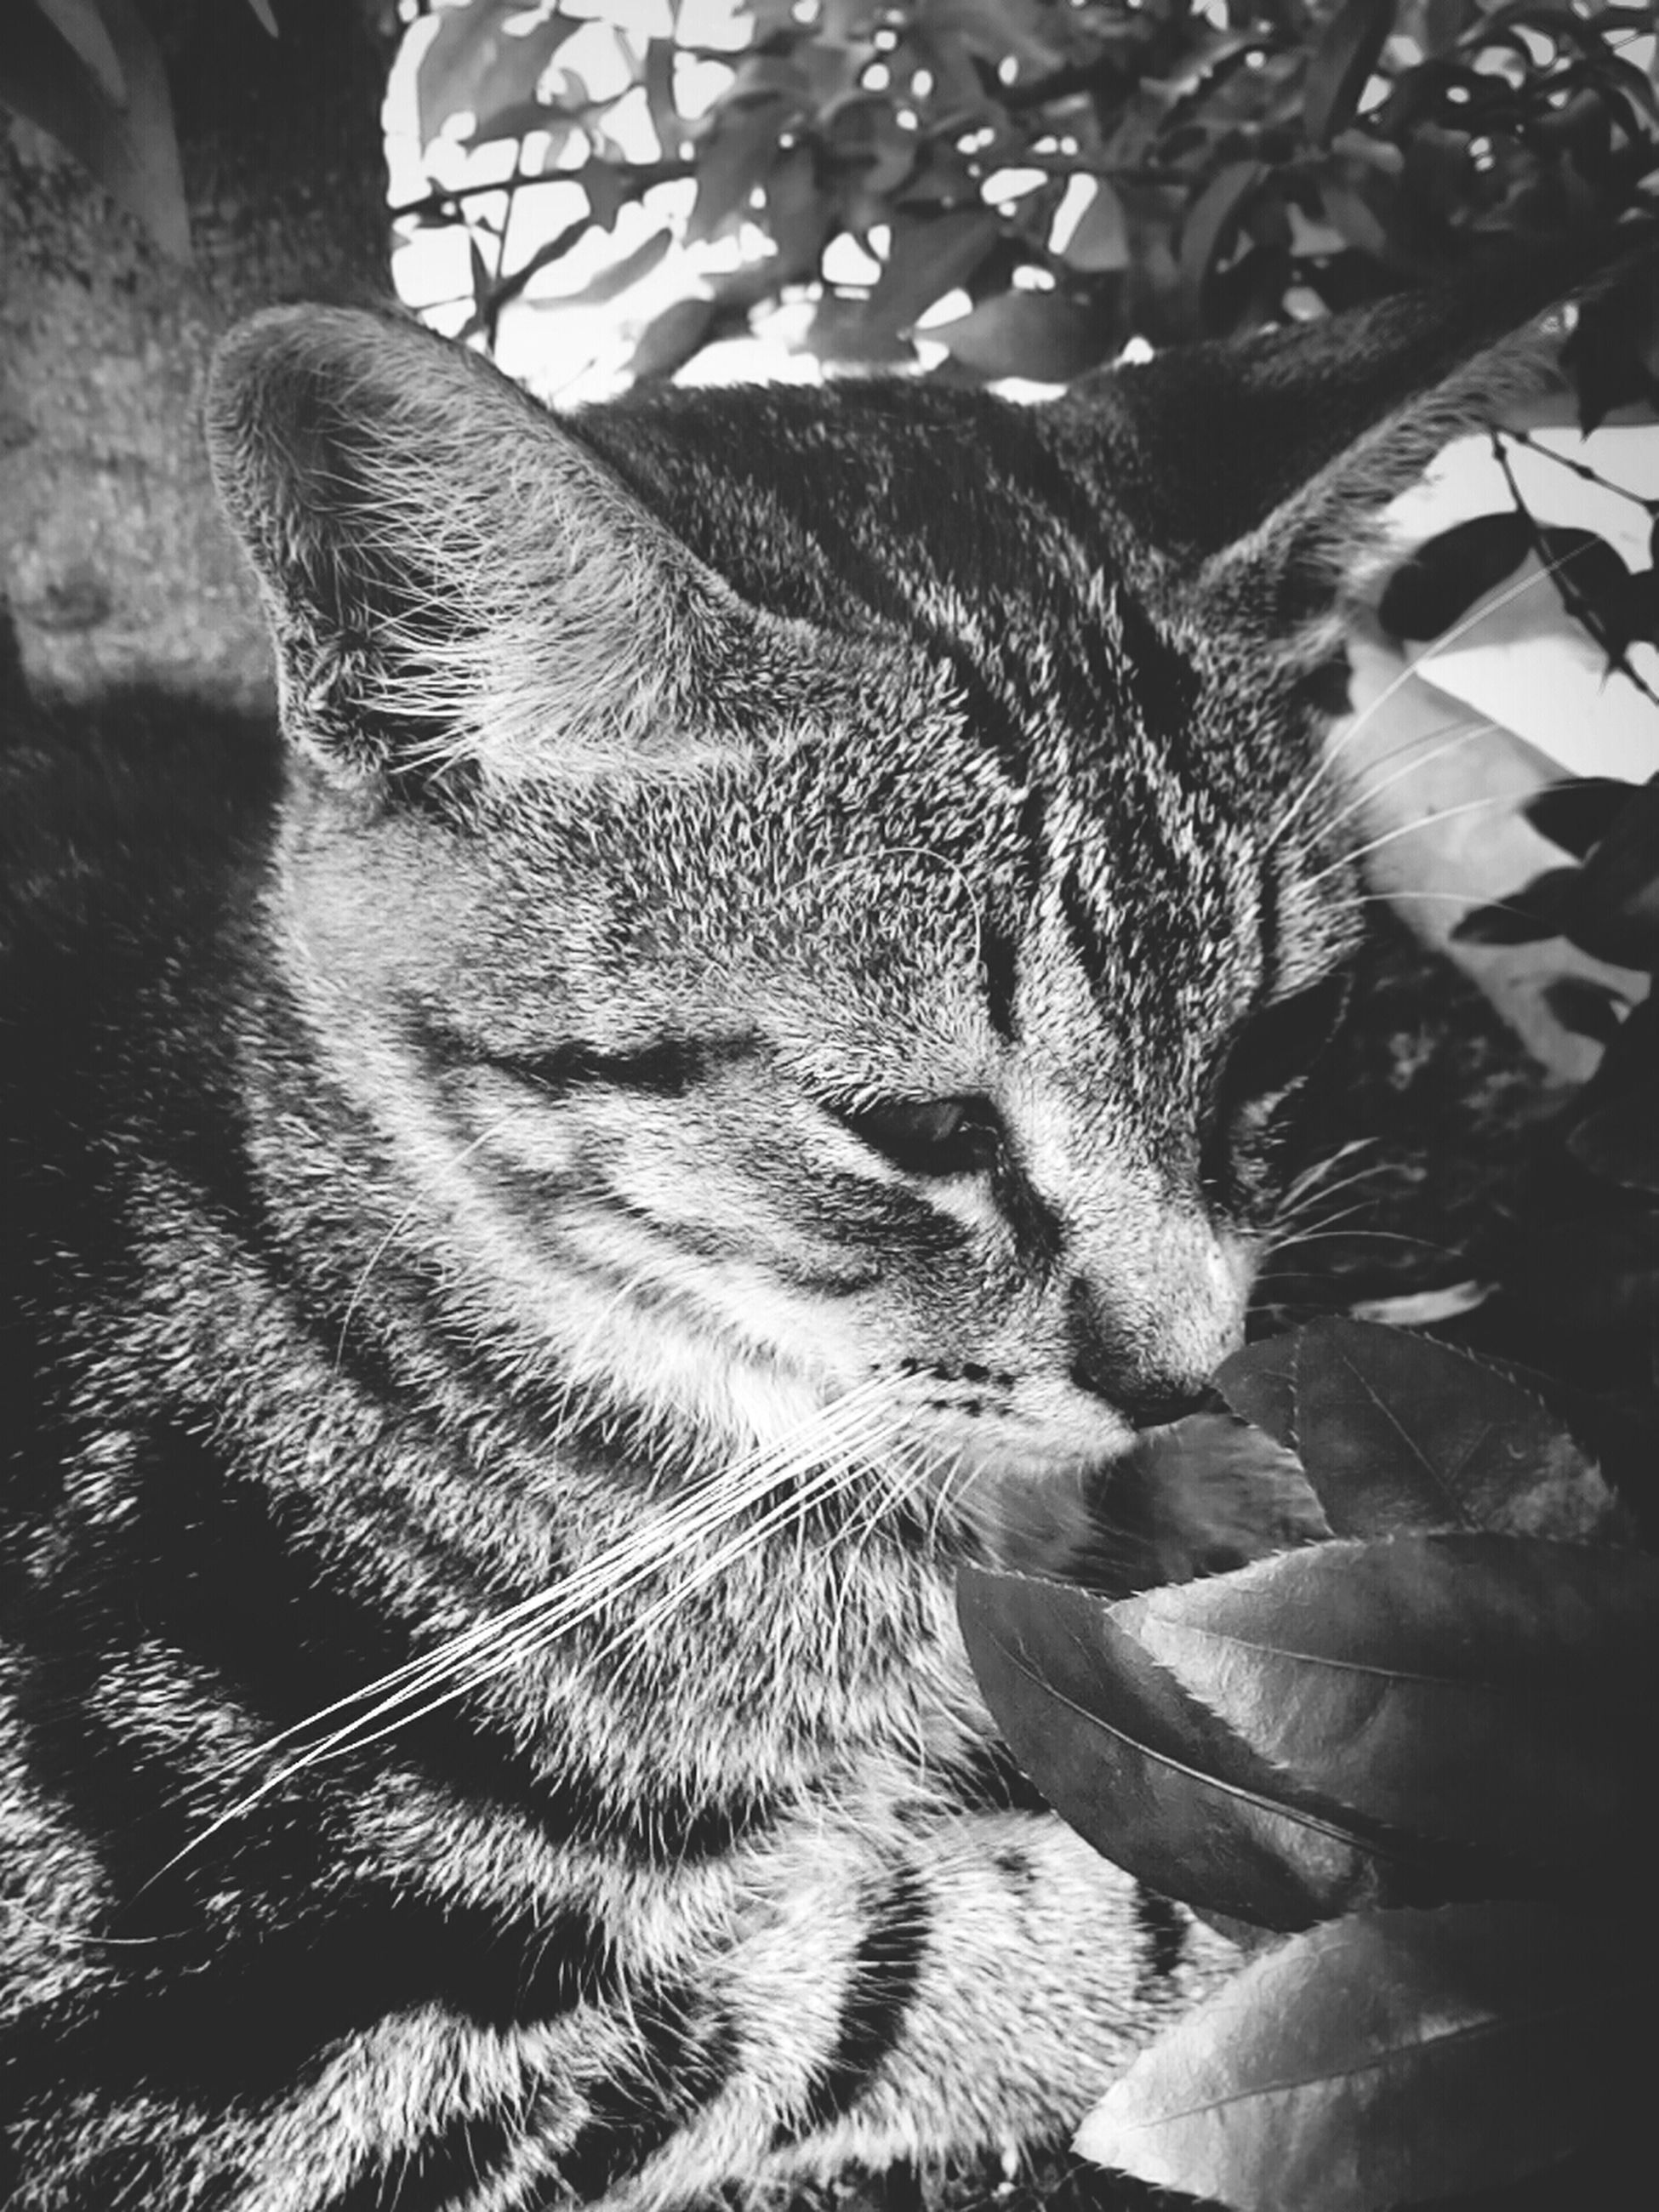 animal themes, one animal, mammal, domestic animals, domestic cat, close-up, pets, feline, cat, whisker, no people, high angle view, sunlight, day, indoors, relaxation, animal head, sleeping, nature